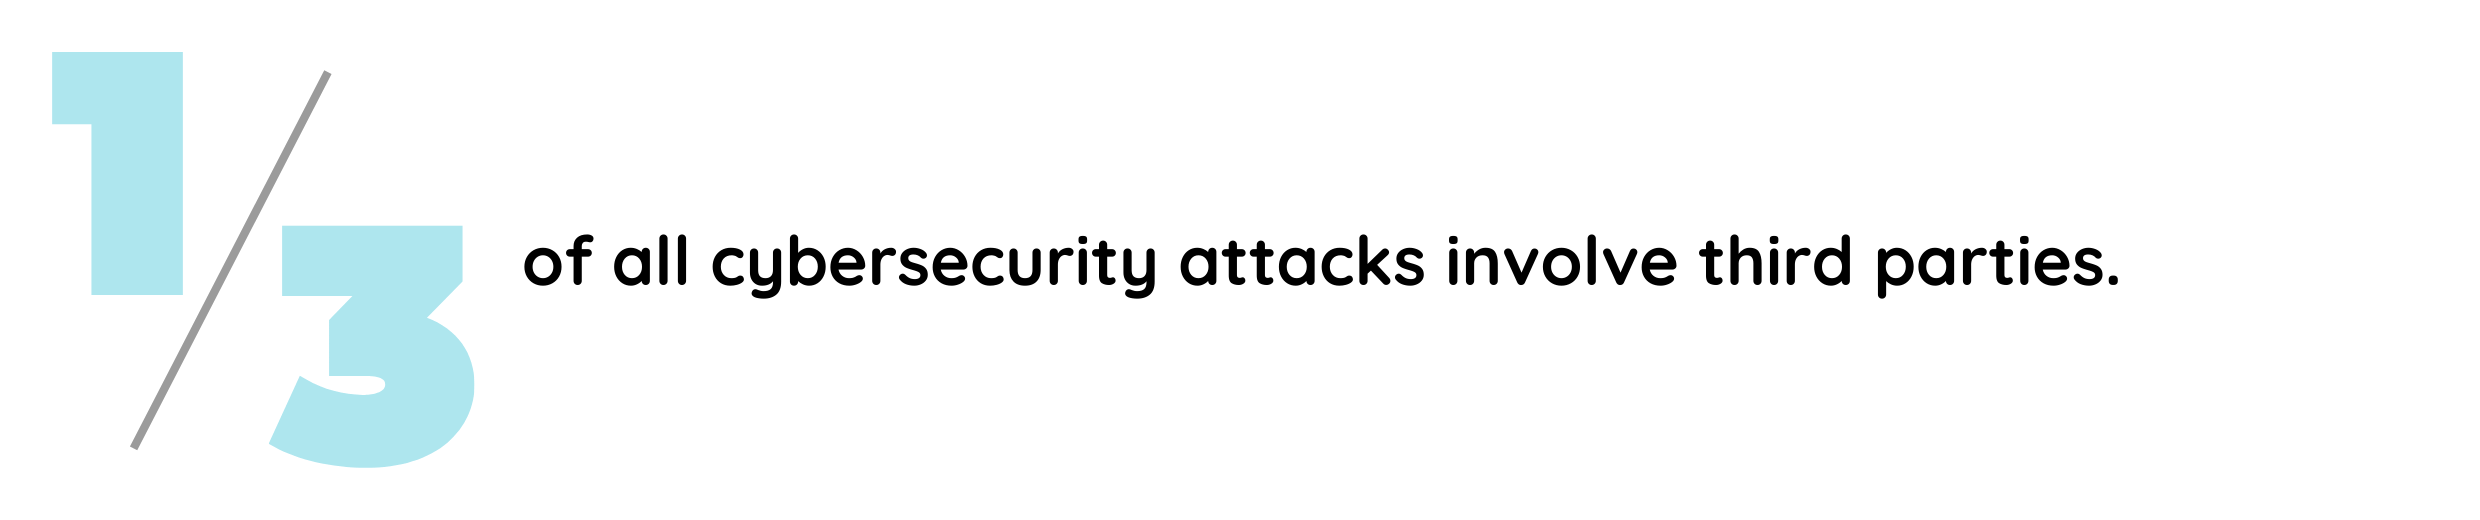 One third of all cybersecurity attacks involve third parties.